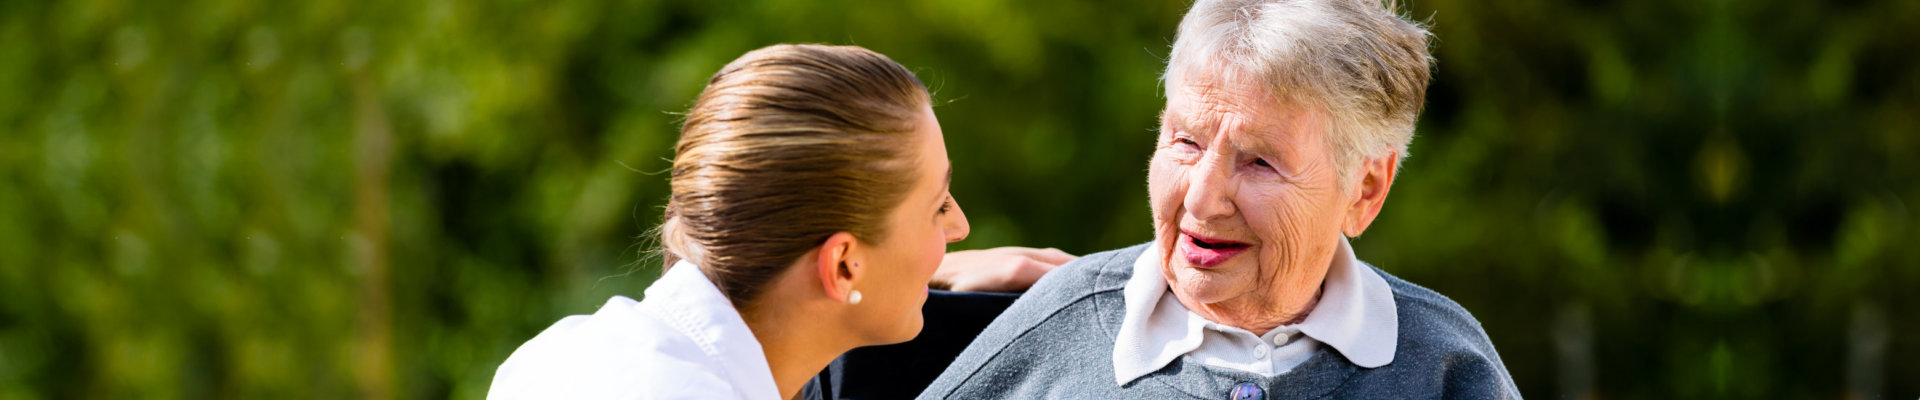 caregiver and elderly lady smiling at each other